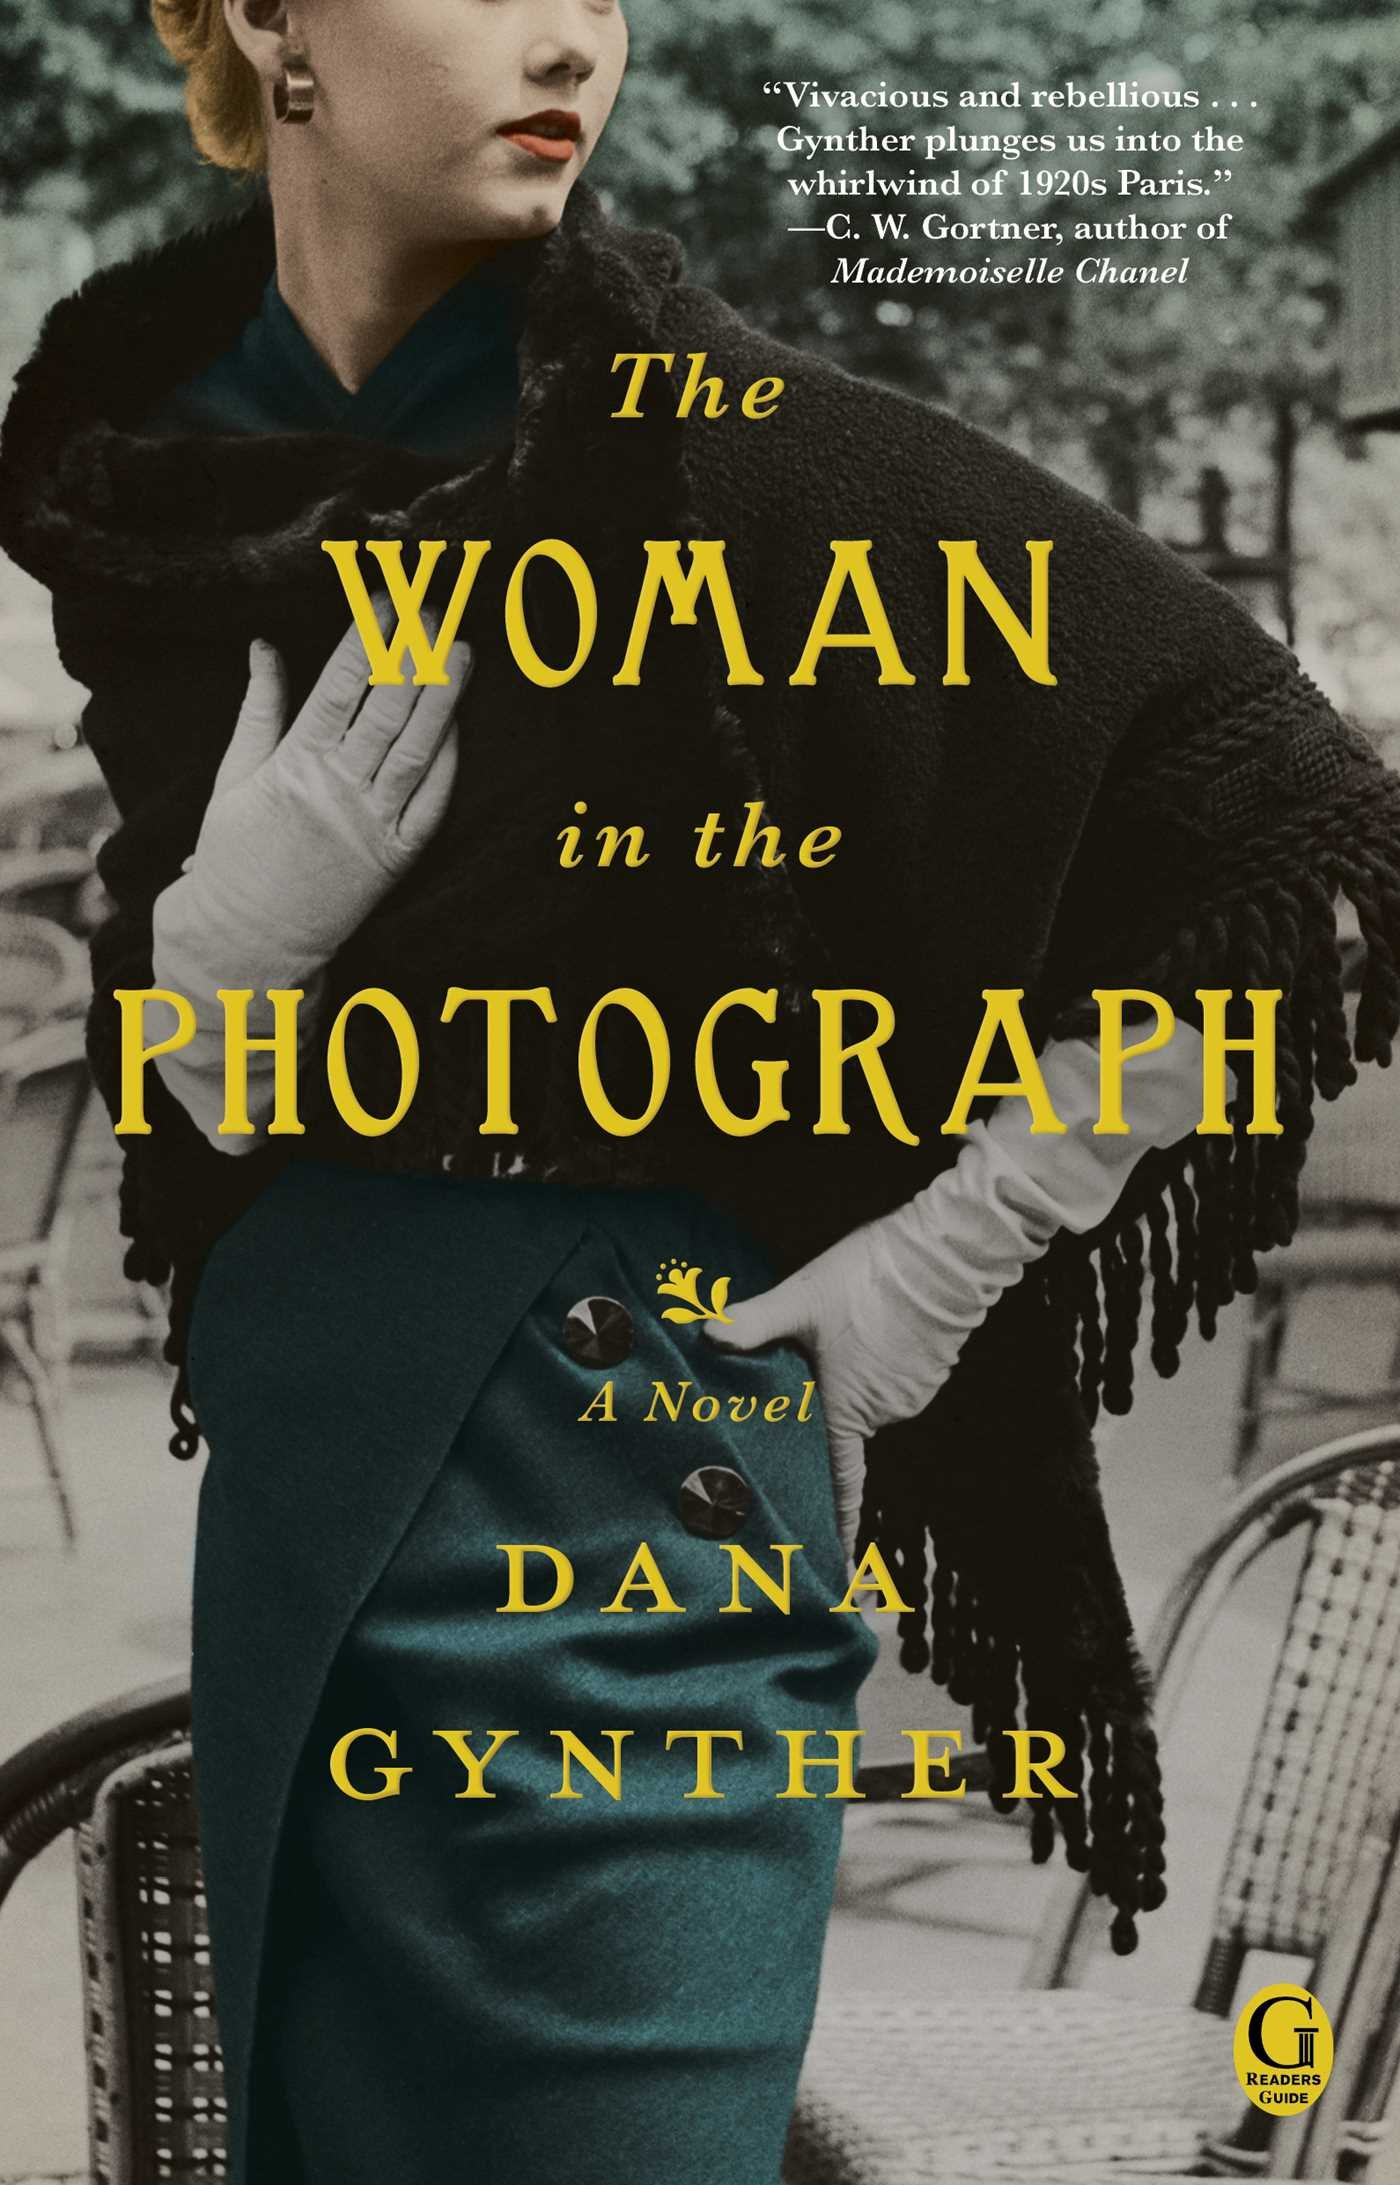 Amazon: The Woman In The Photograph (9781476731957): Dana Gynther: Books